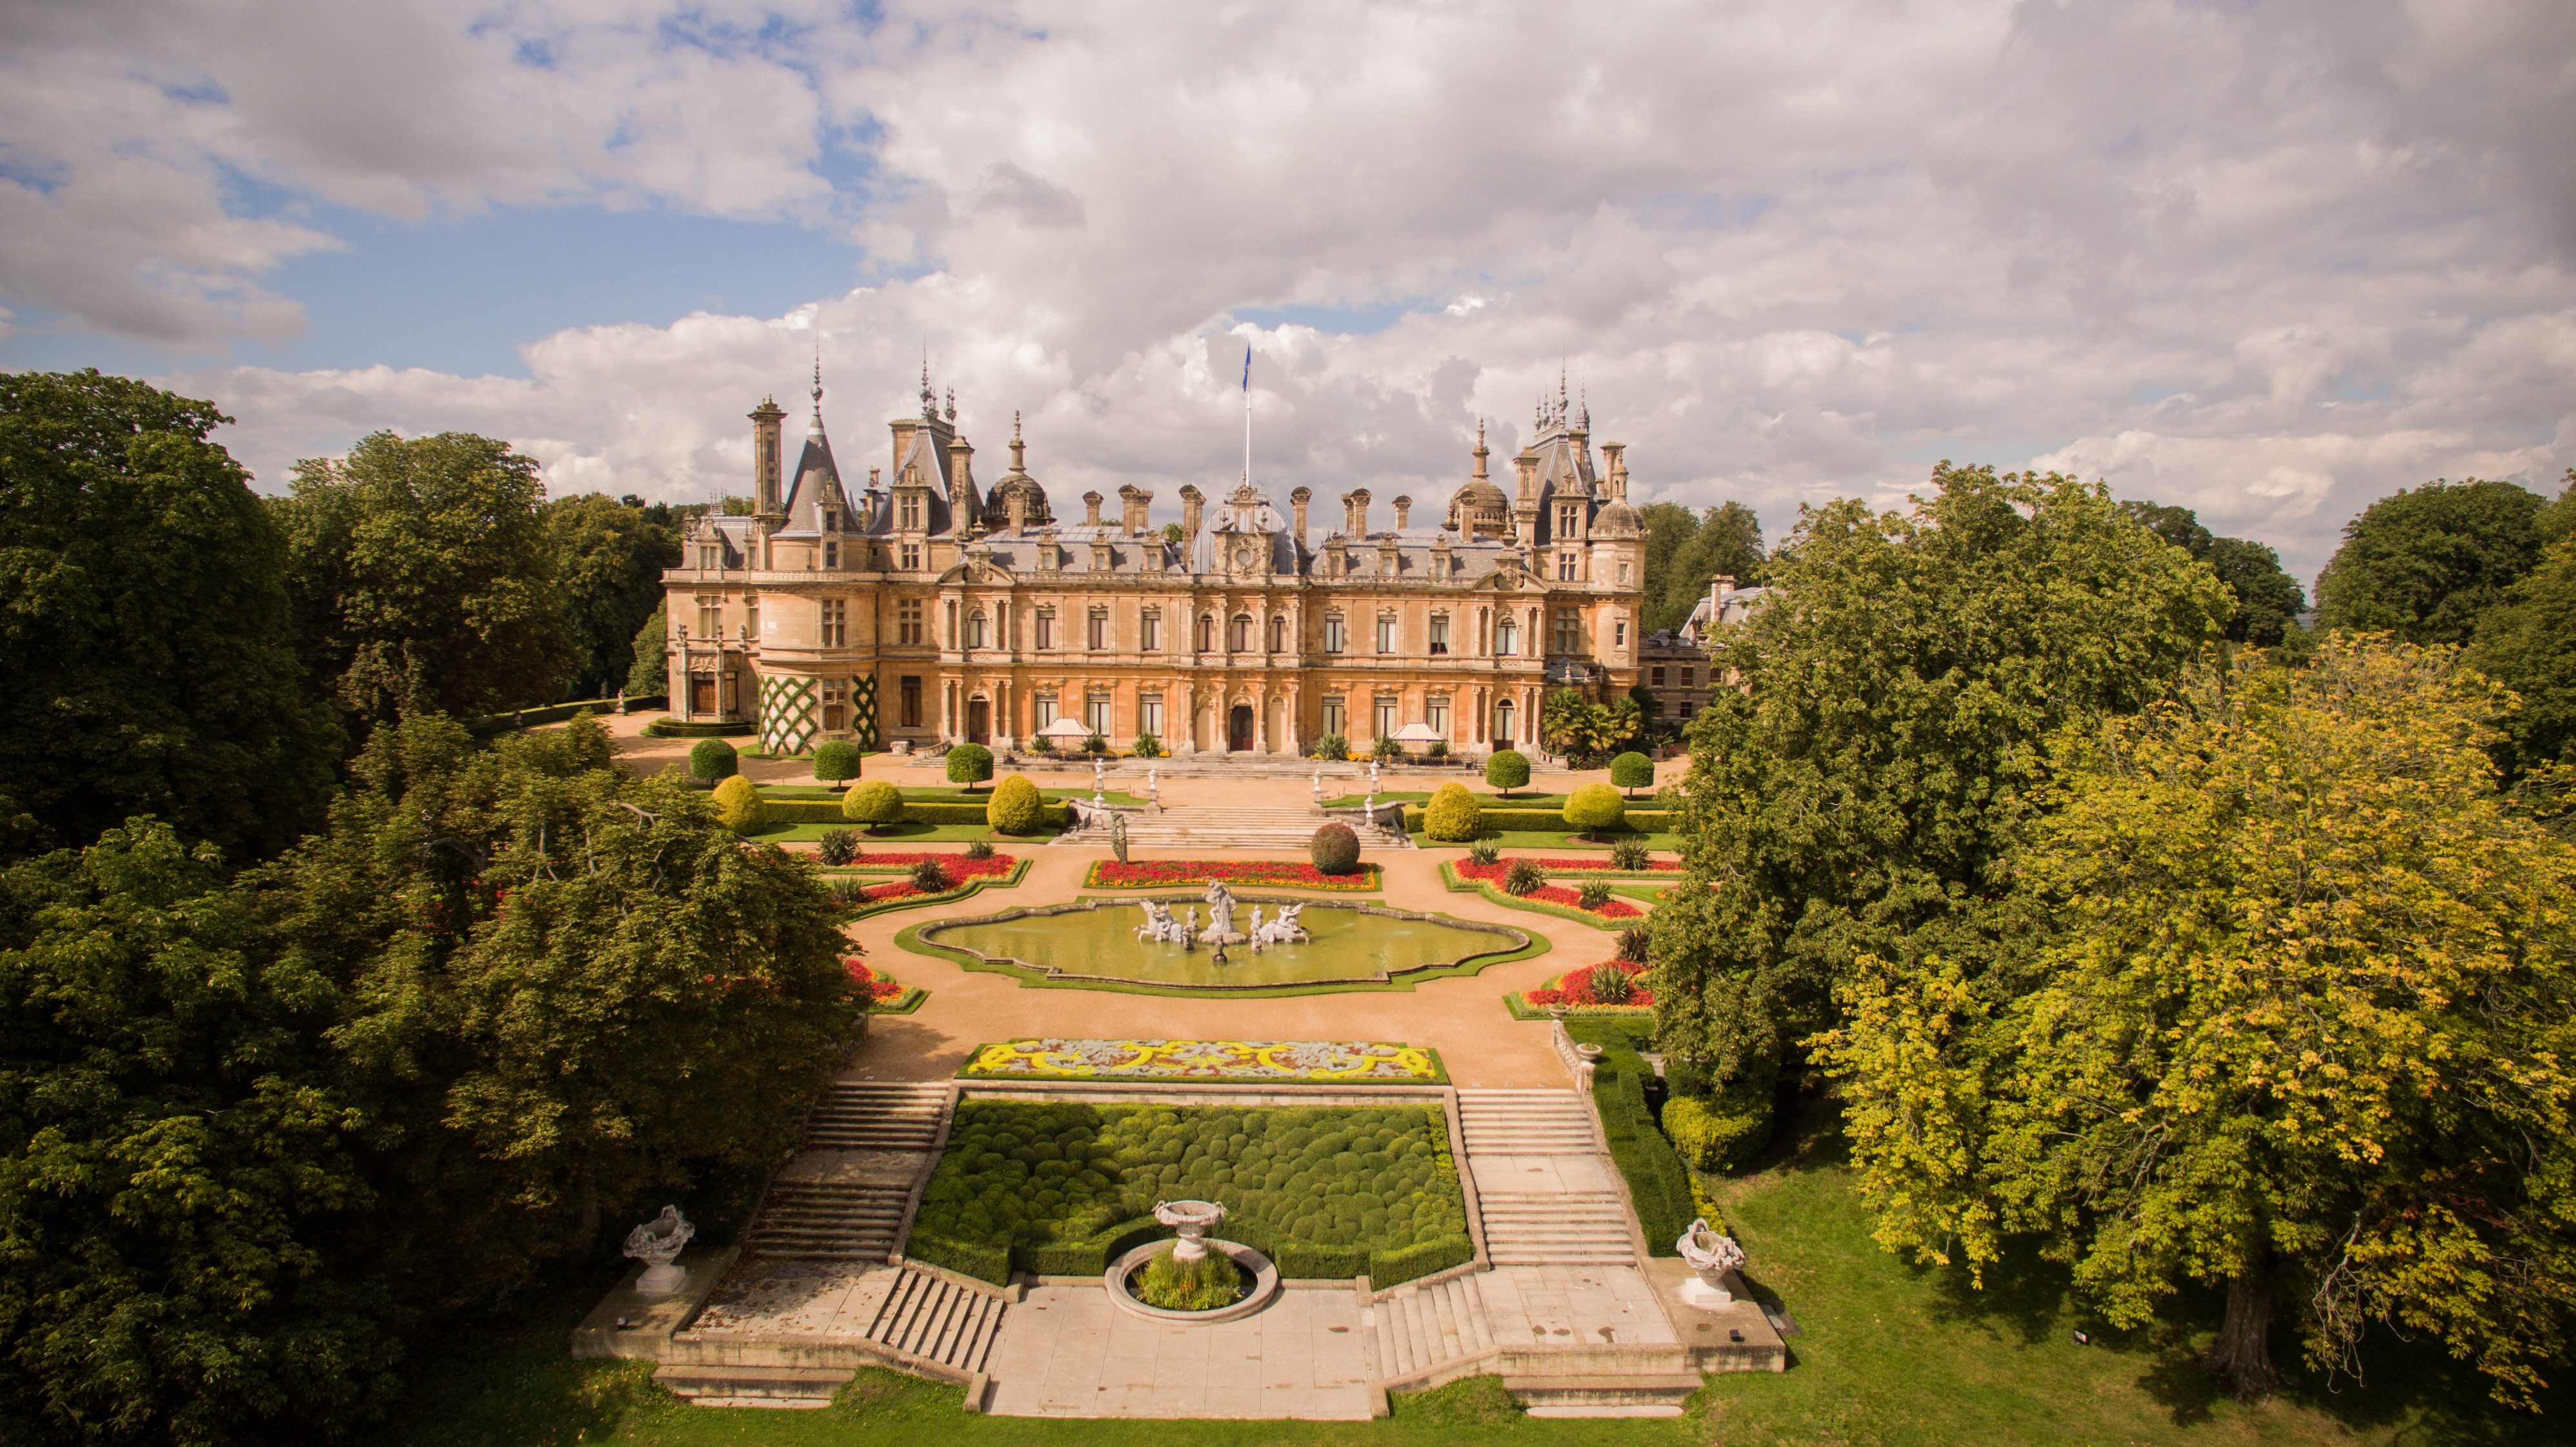 South Front , Waddesdon Manor. Photo Studio 8 © National Trust, Waddesdon Manor